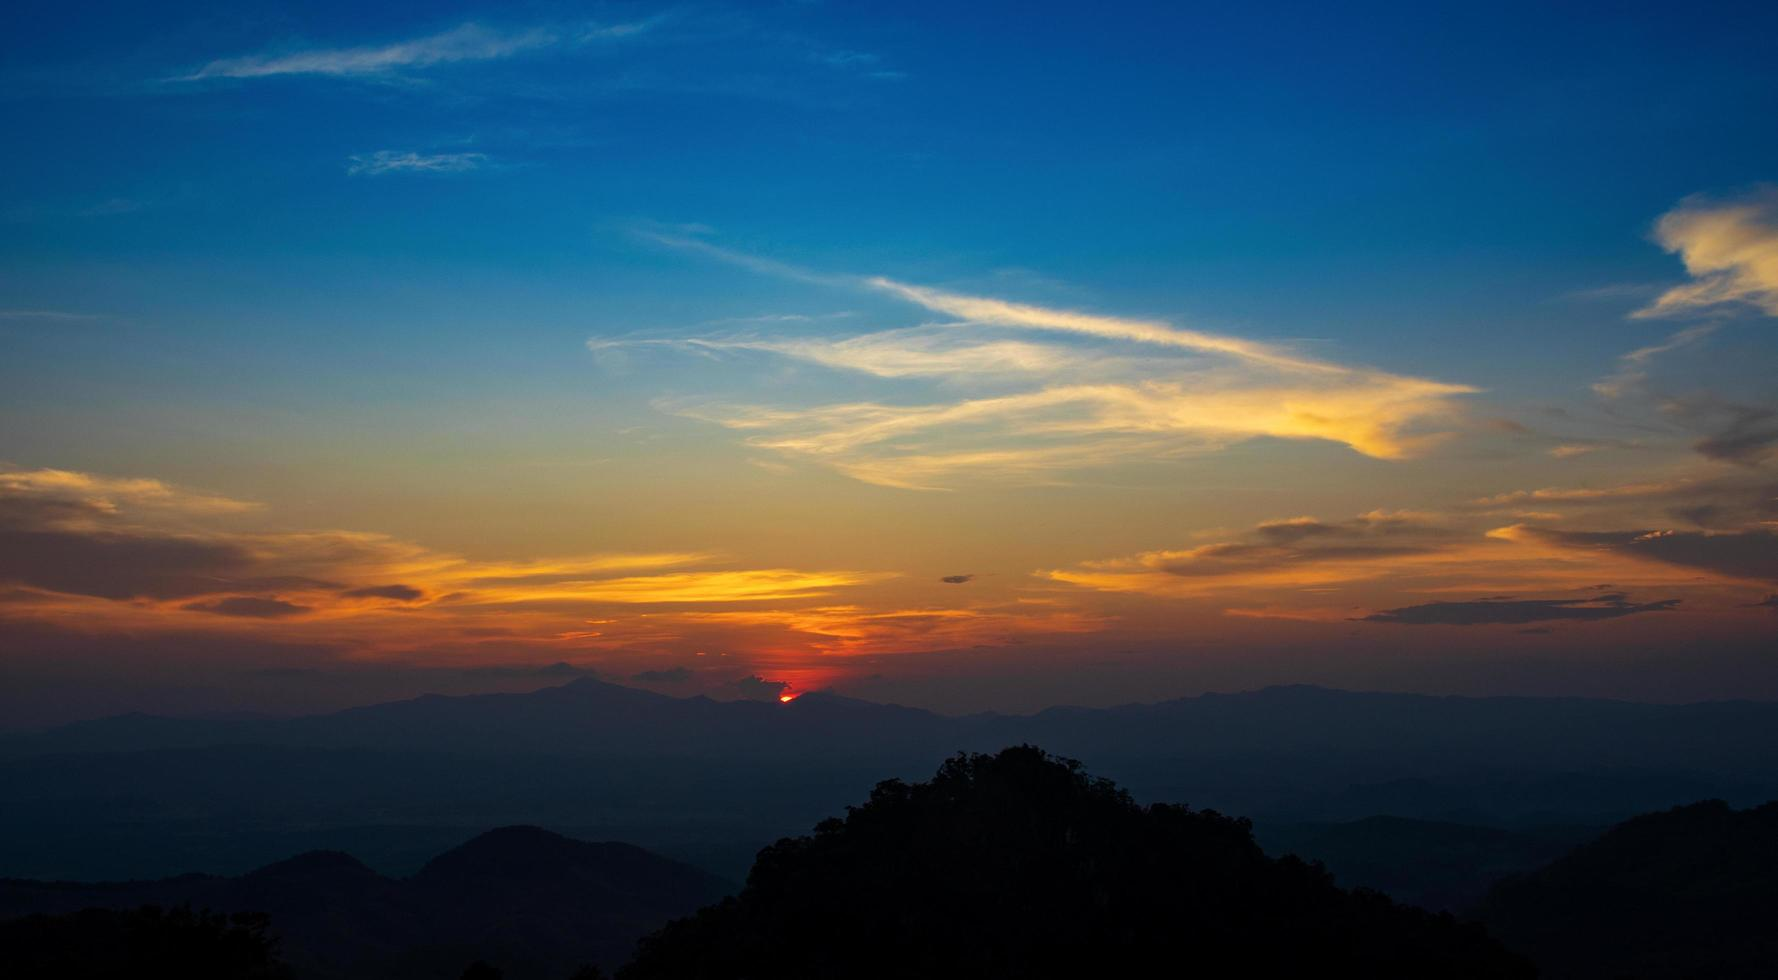 Sunset over the mountains in northern Thailand photo